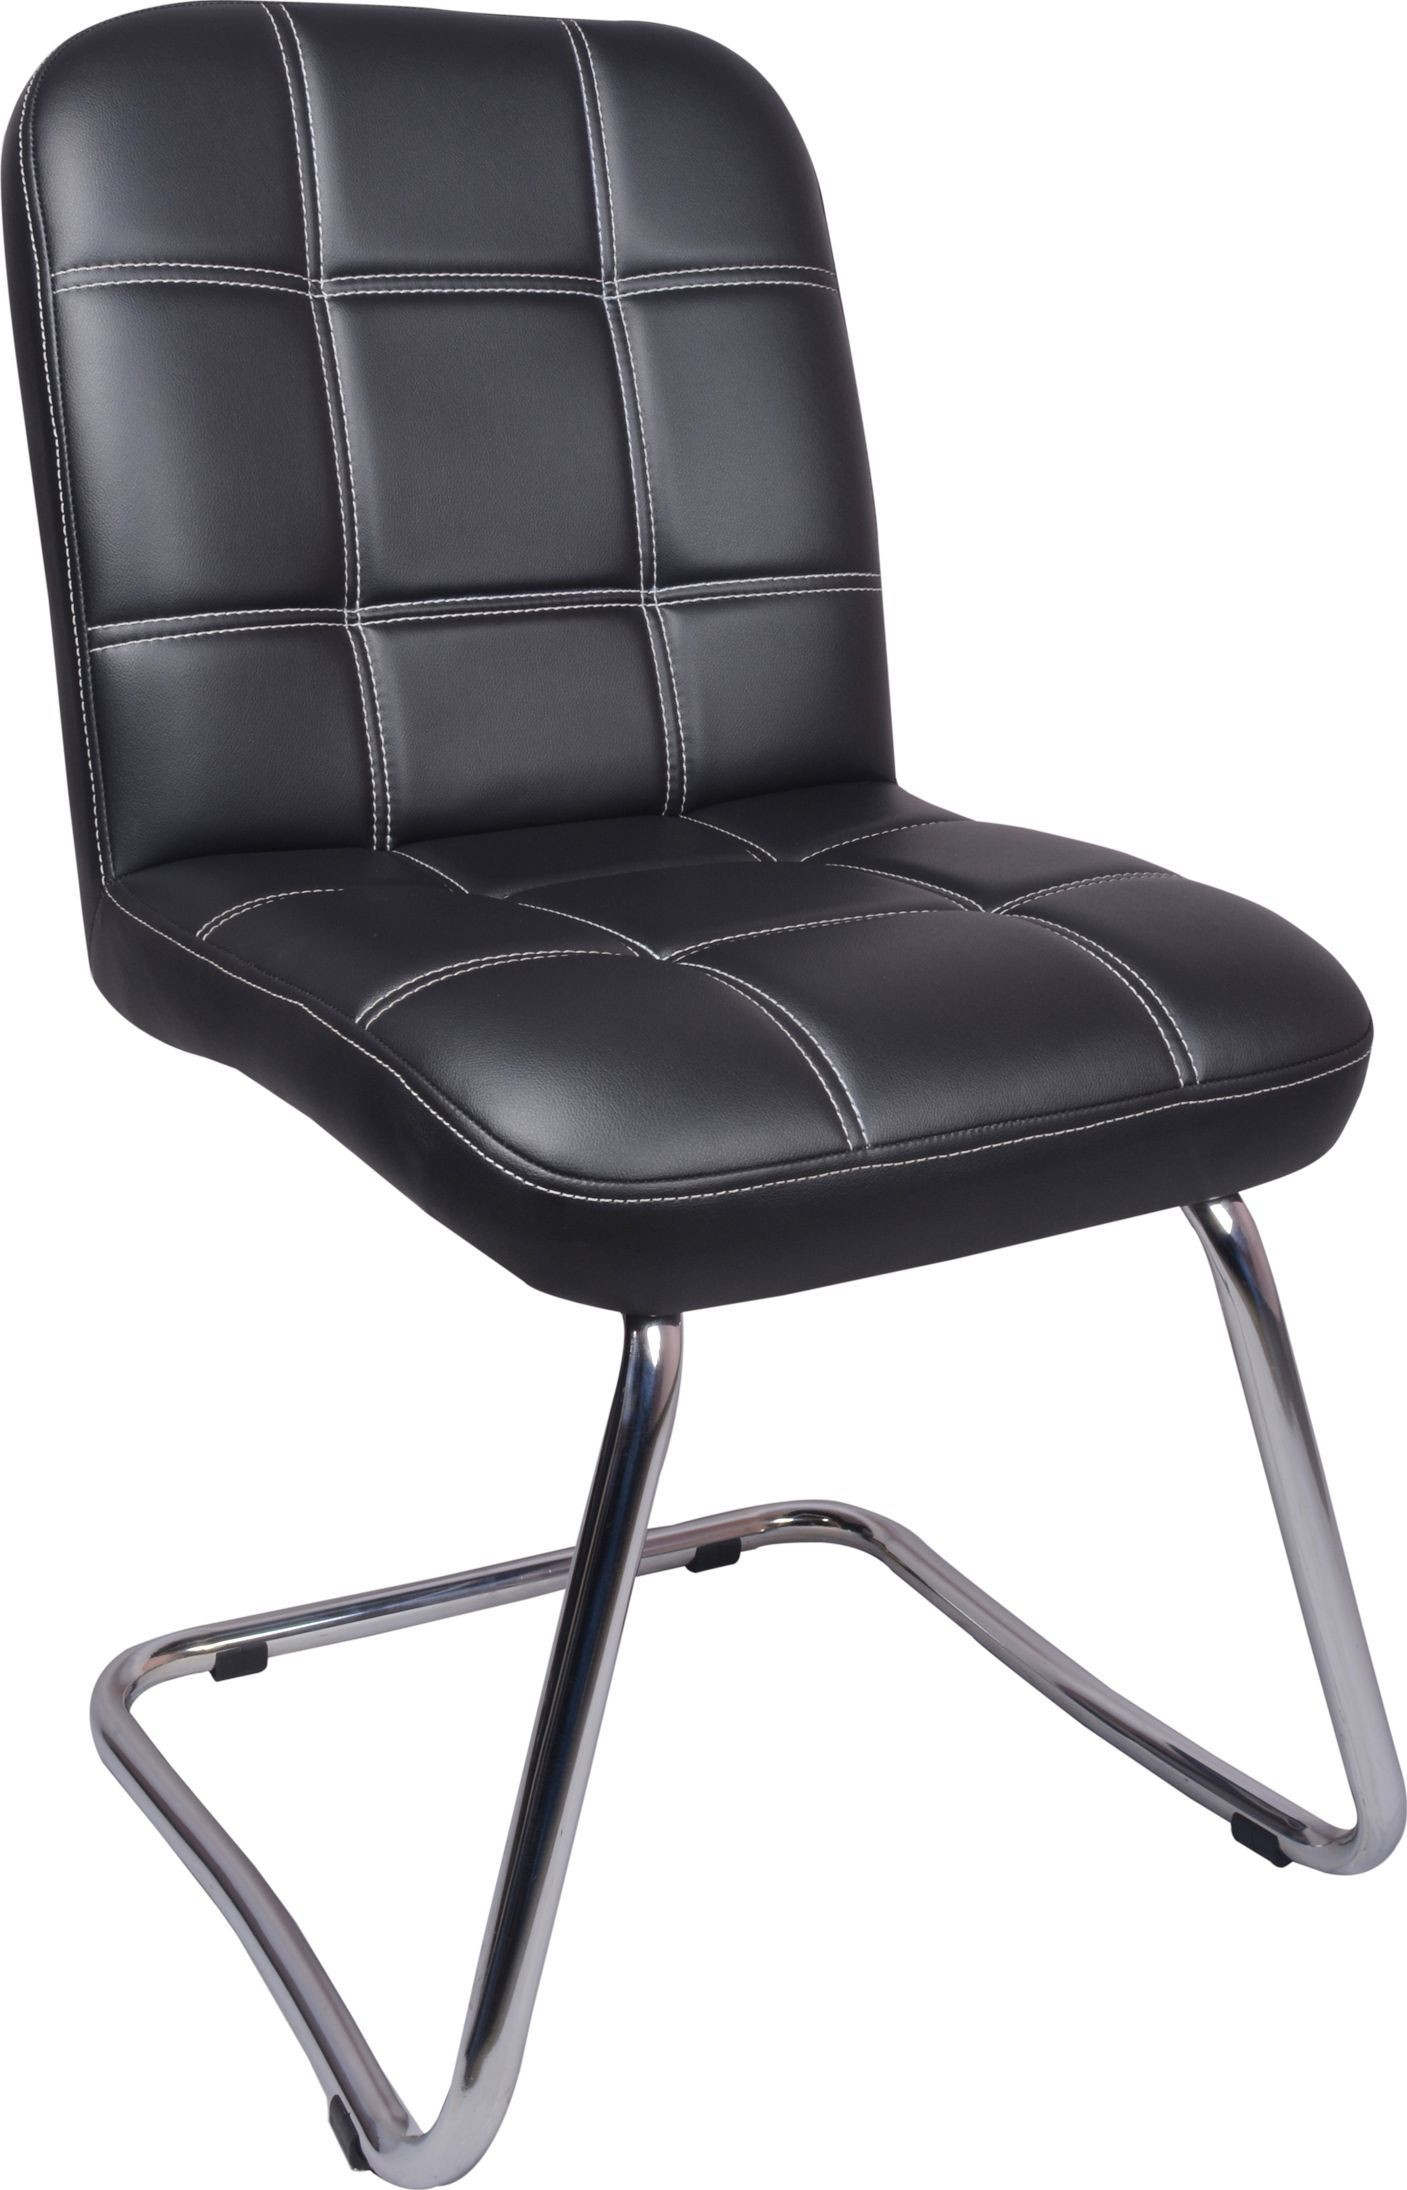 Deals - Bhopal - Leatherette Chairs <br> Durian & more<br> Category - furniture<br> Business - Flipkart.com